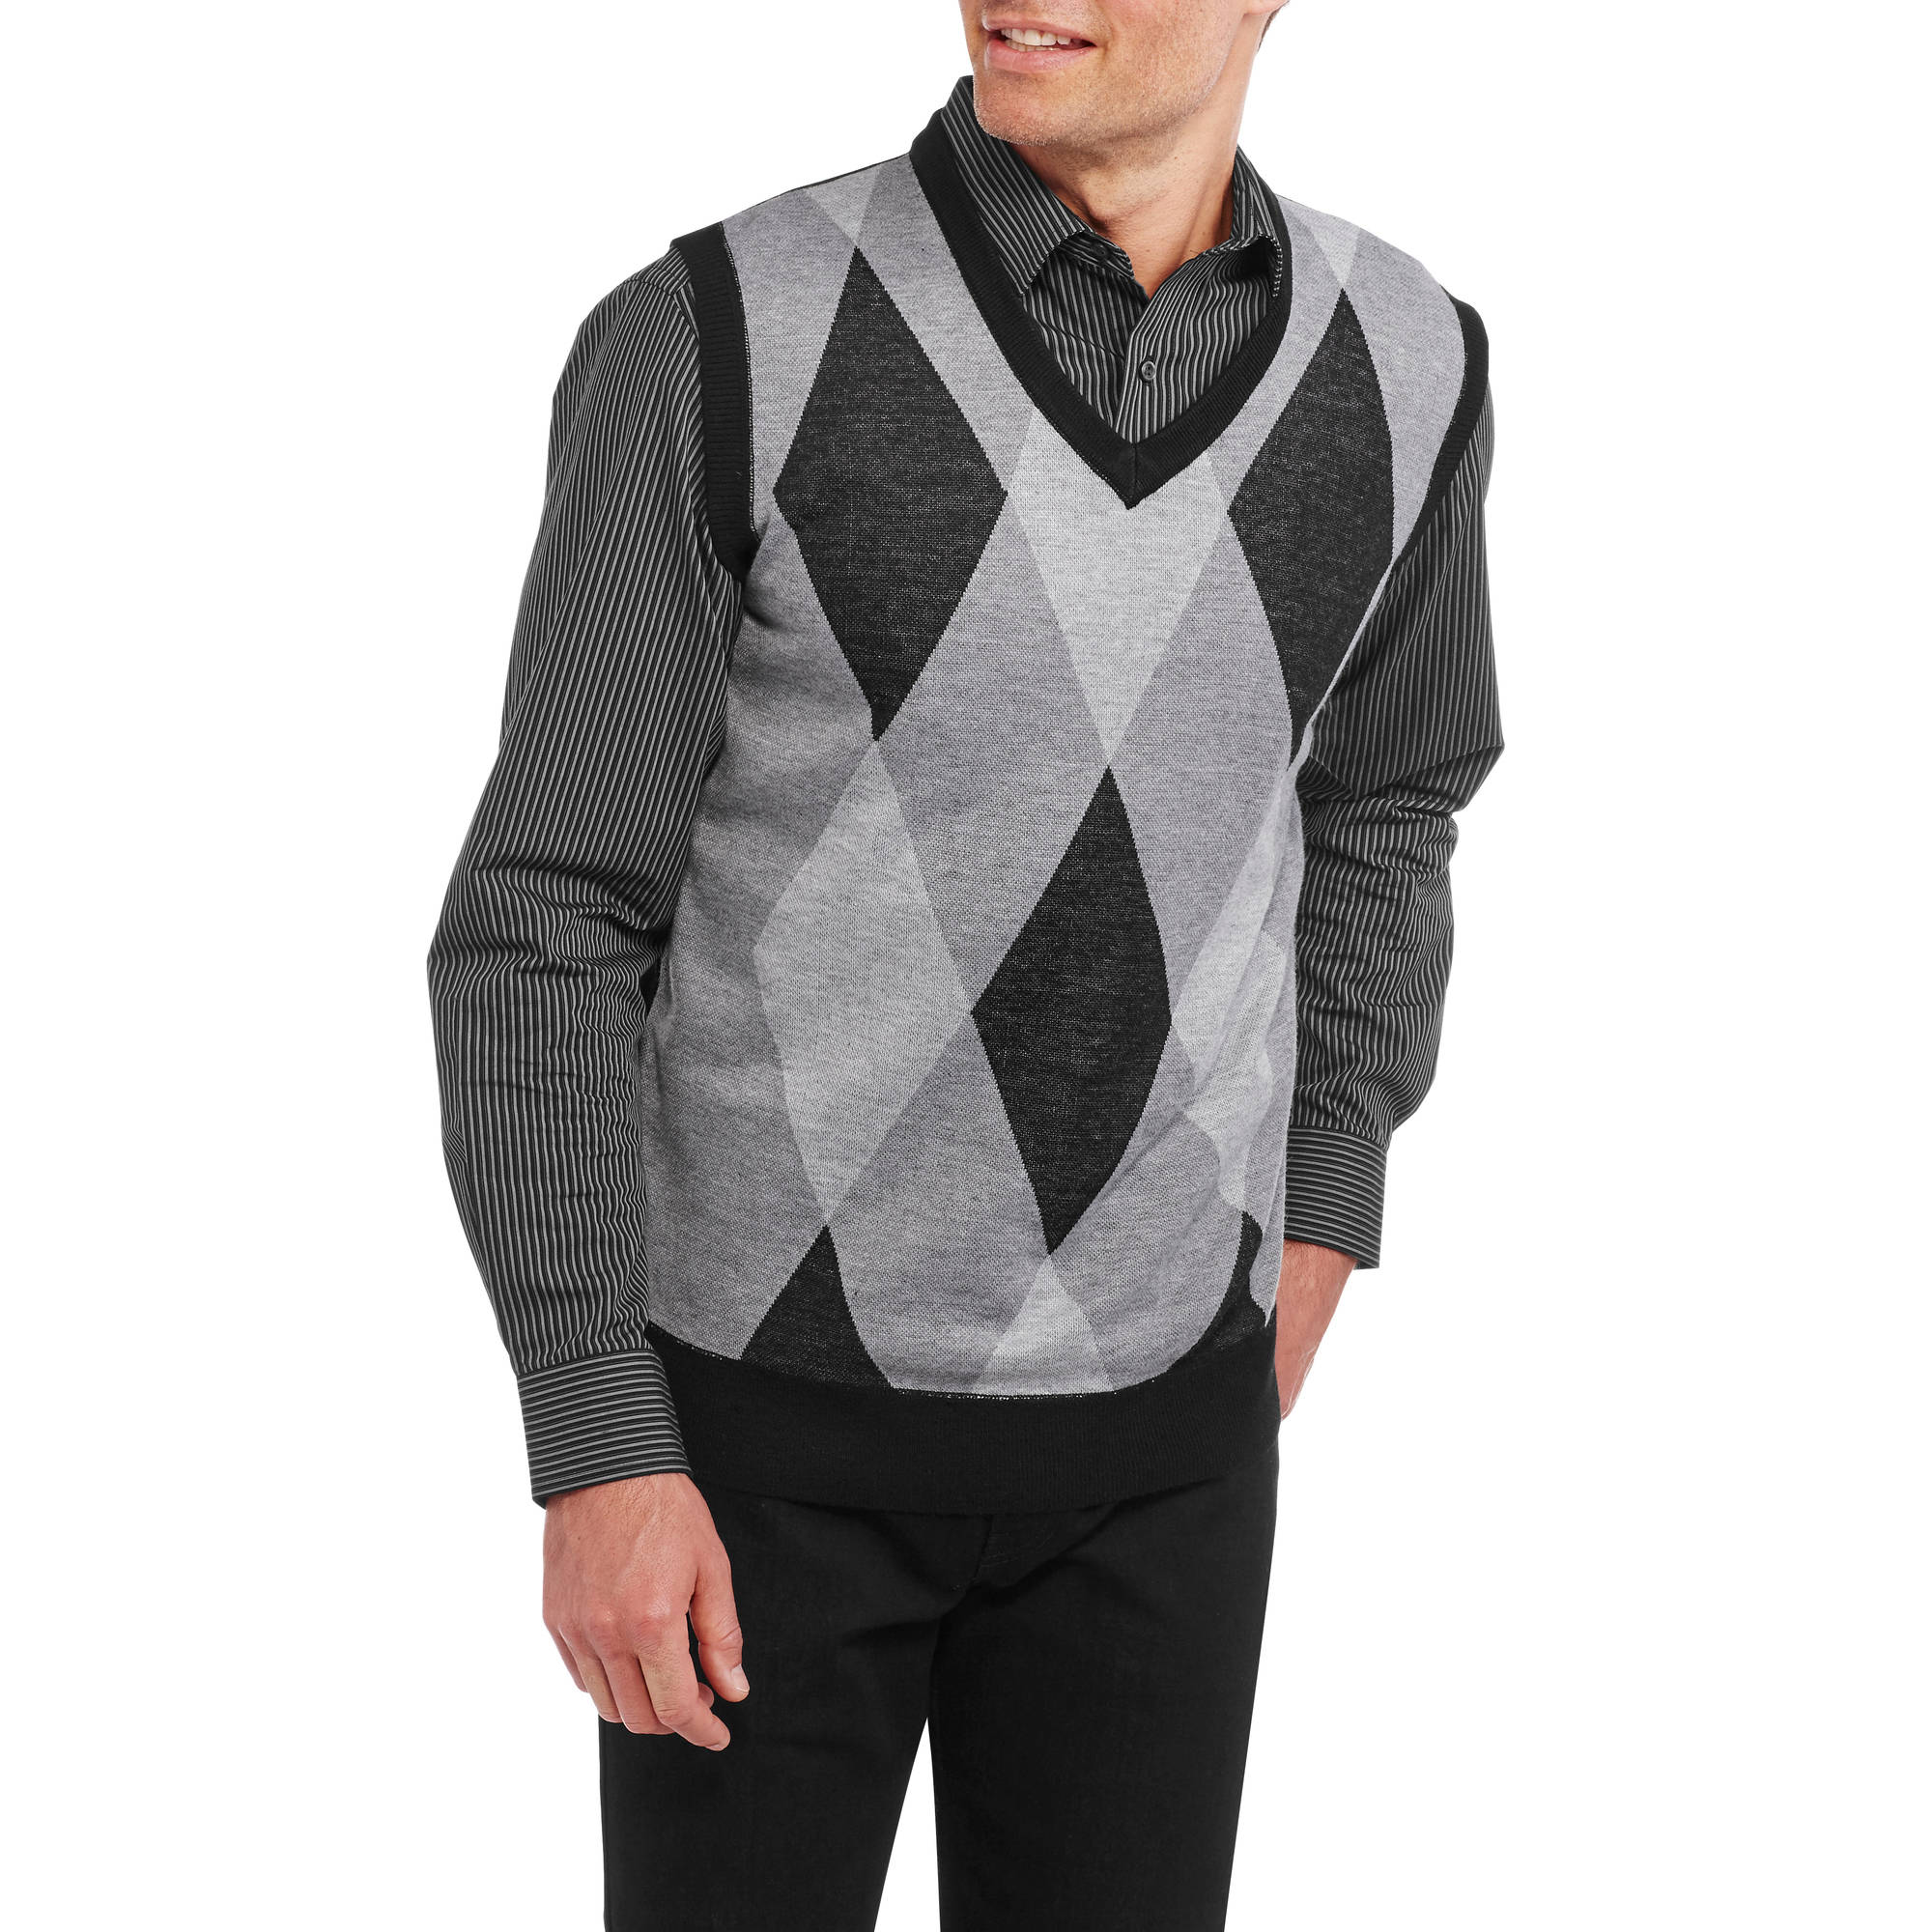 Mens Argyle Jacquard Sweater Vest